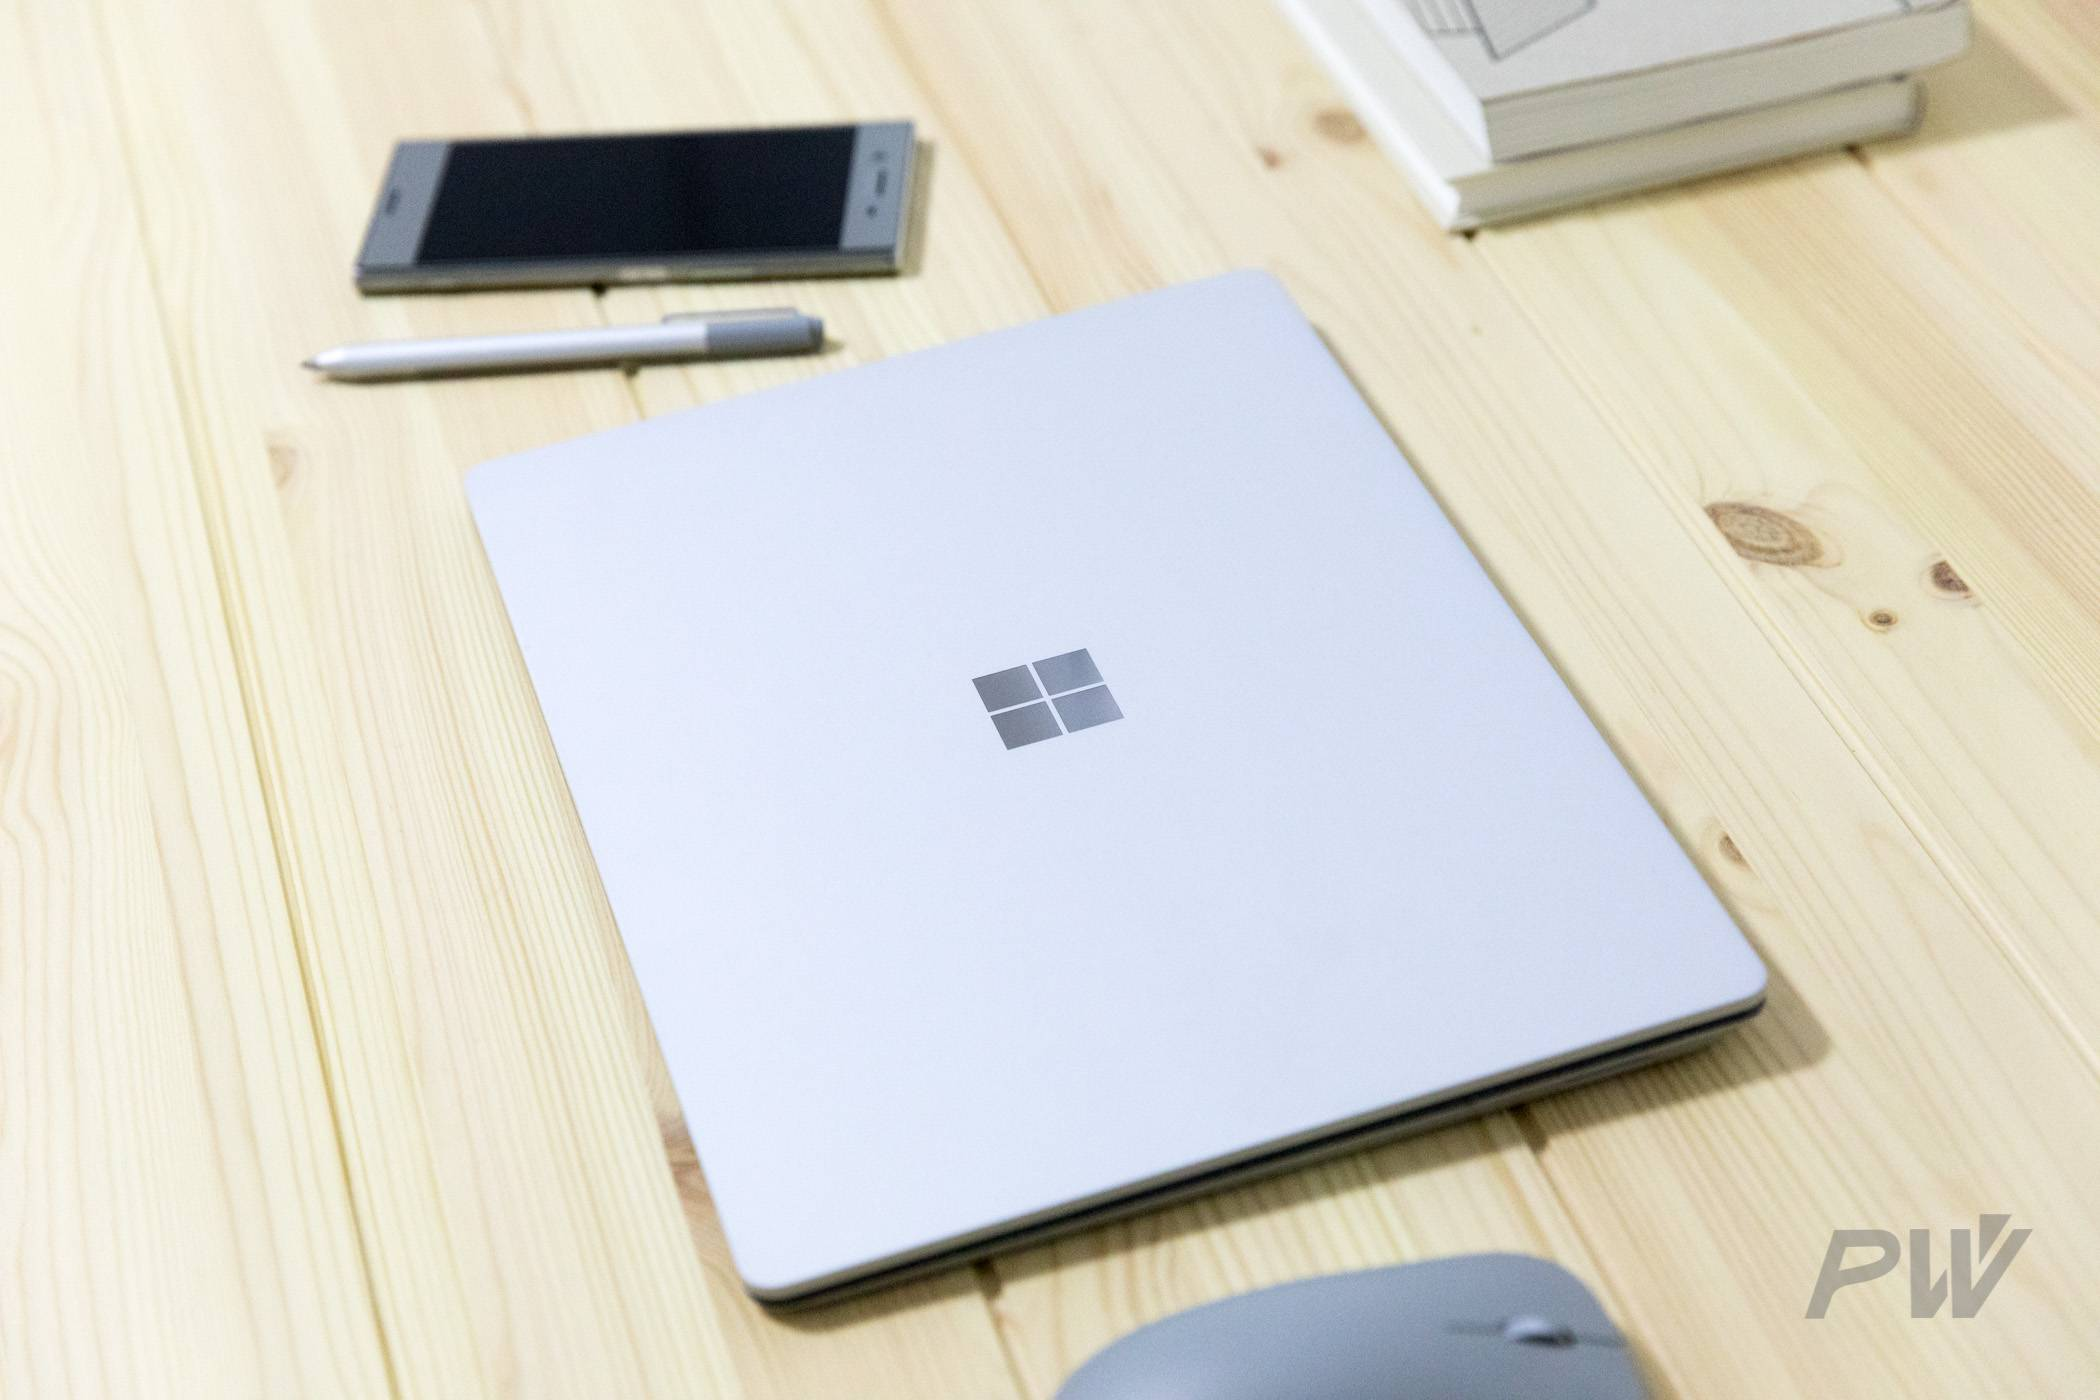 Microsoft Surface Laptop Photo By Hao Ying-6